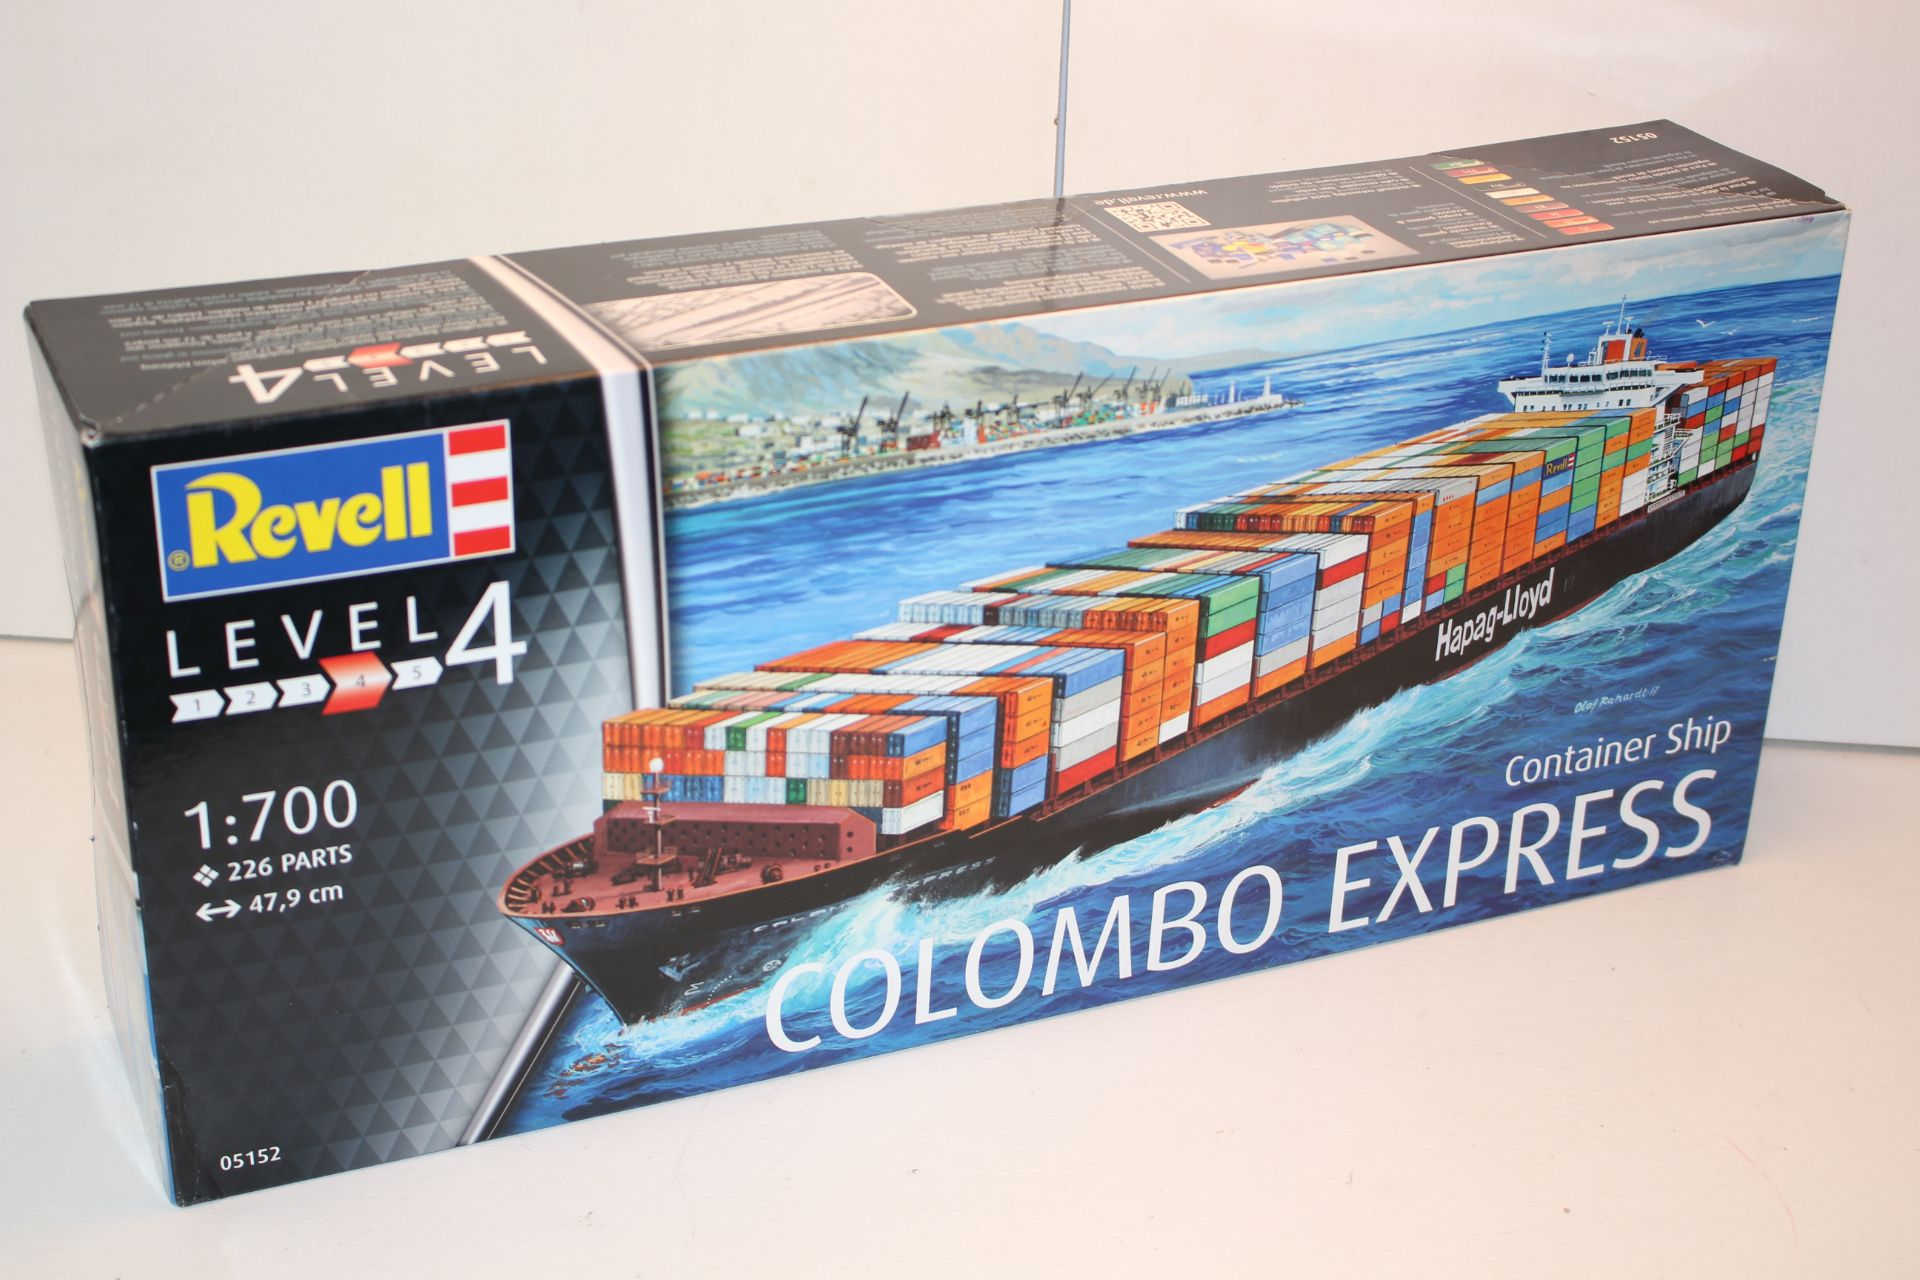 BOXED REVELL LEVEL 4 1:700 SCALE COLOMBO EXPRESS CONTAINER SHIPCondition ReportAppraisal Available